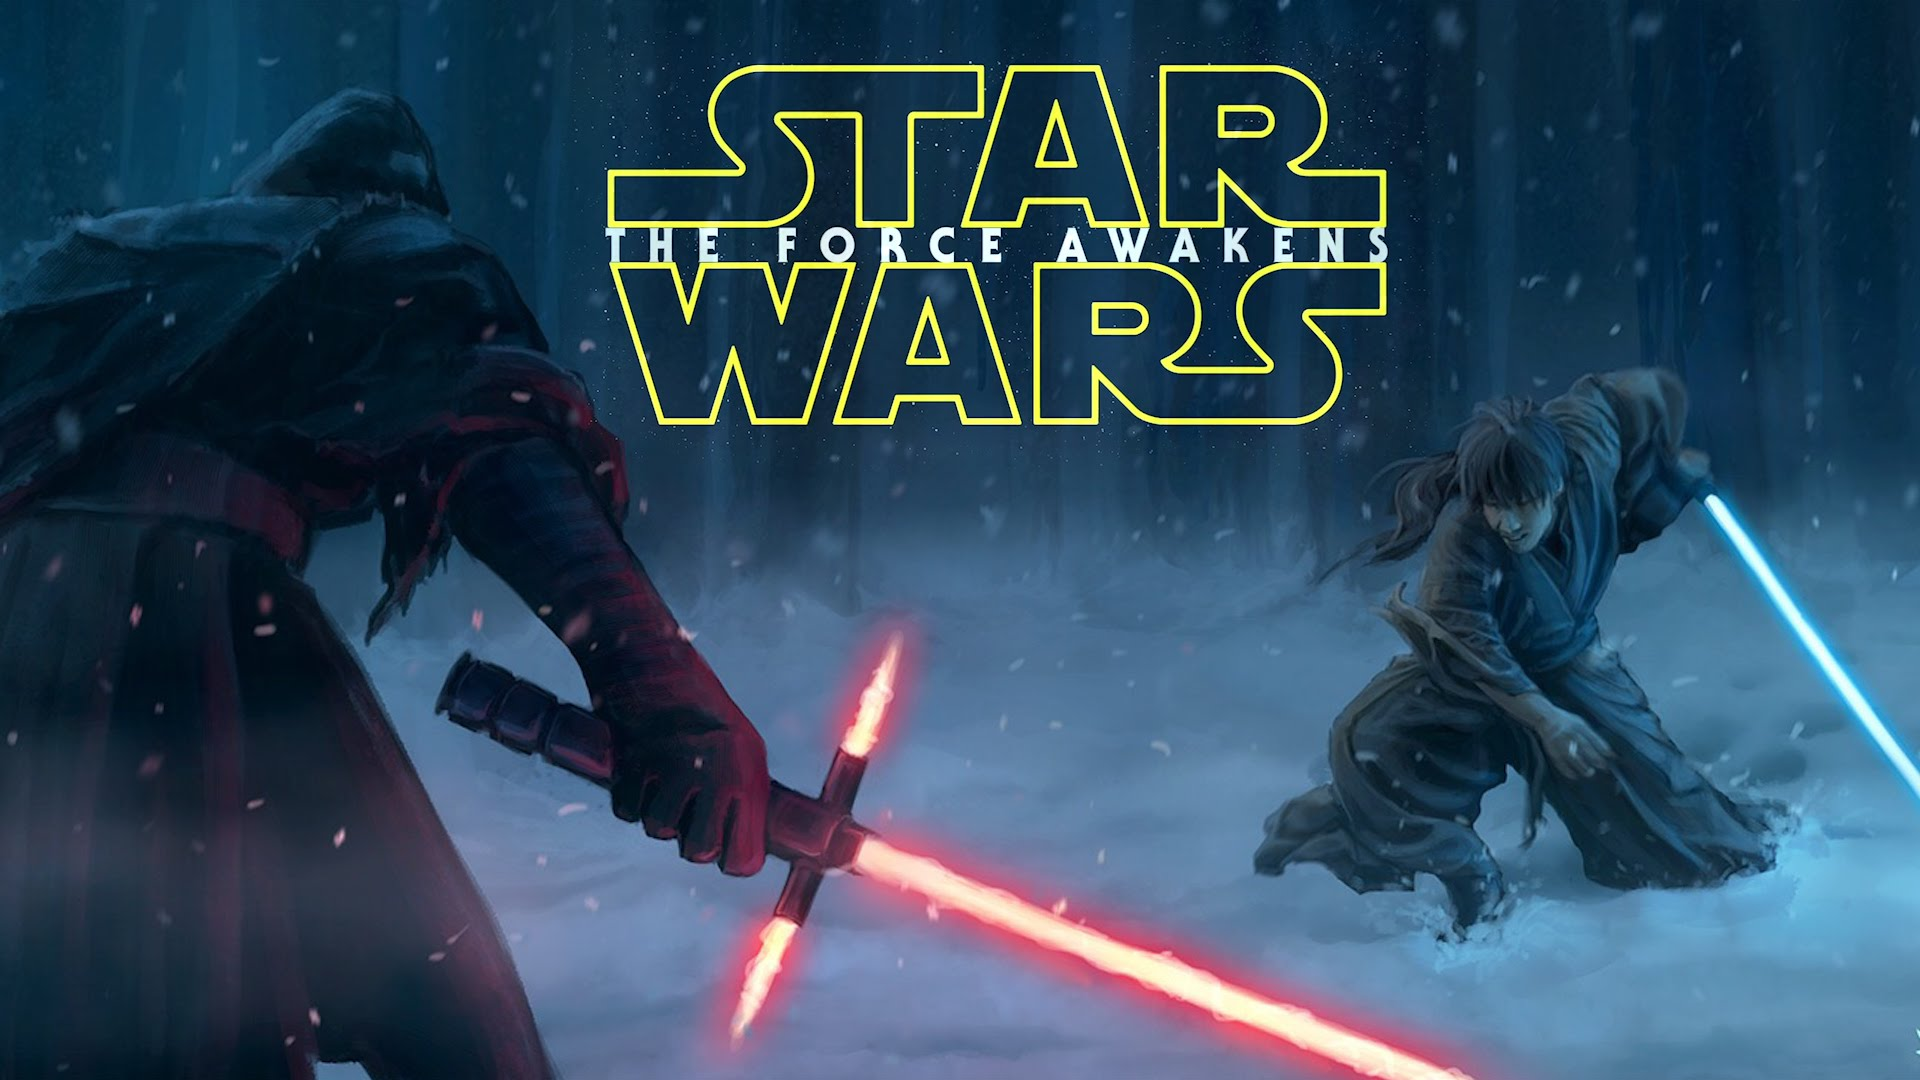 star wars the force awakens it will be watched wrath bearing tree